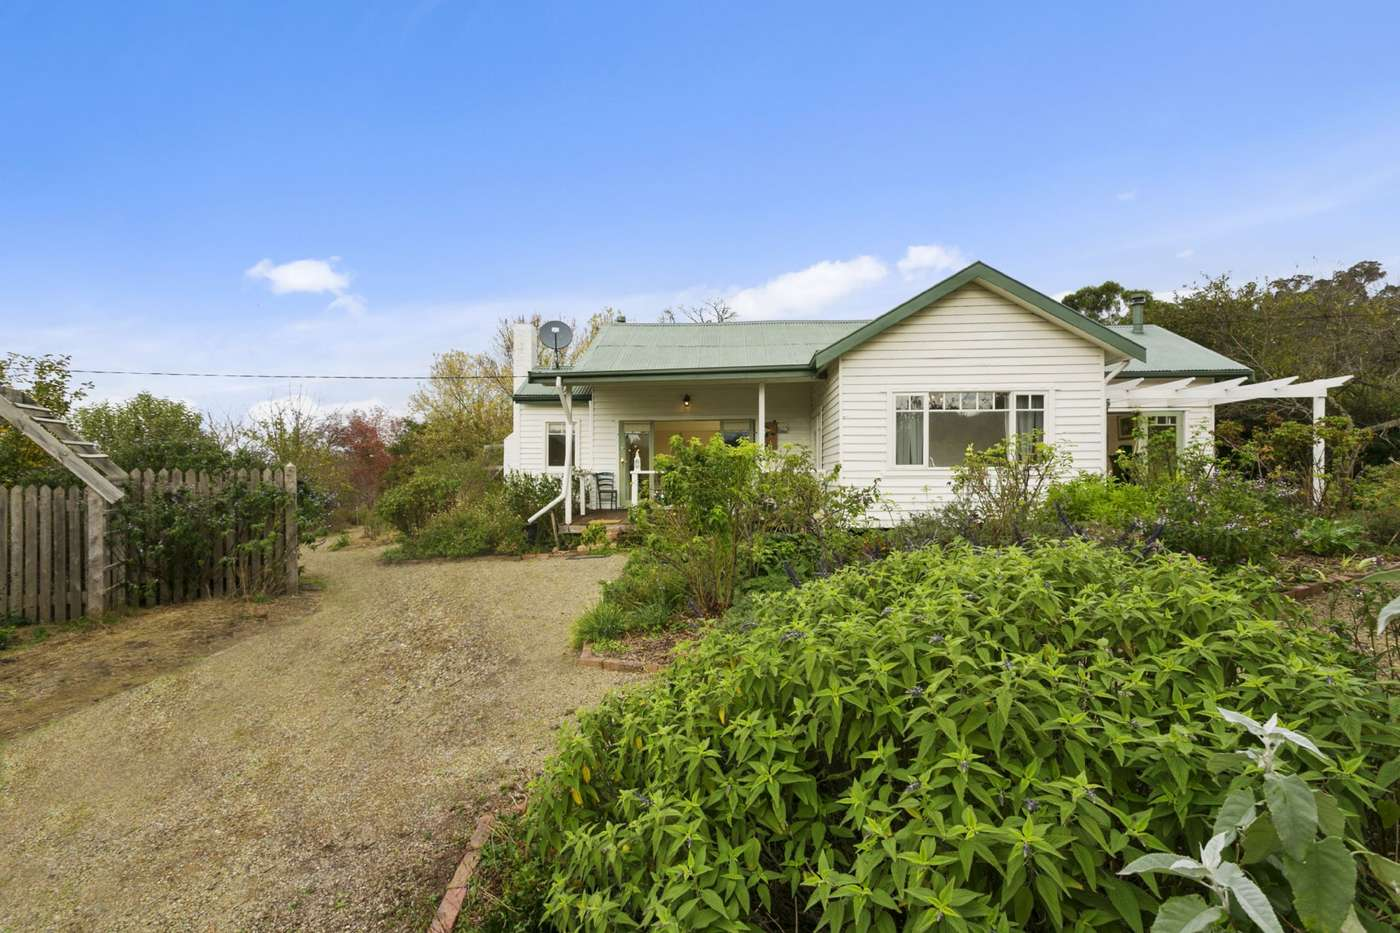 Main view of Homely house listing, 79 Whelans Road, Healesville, VIC 3777